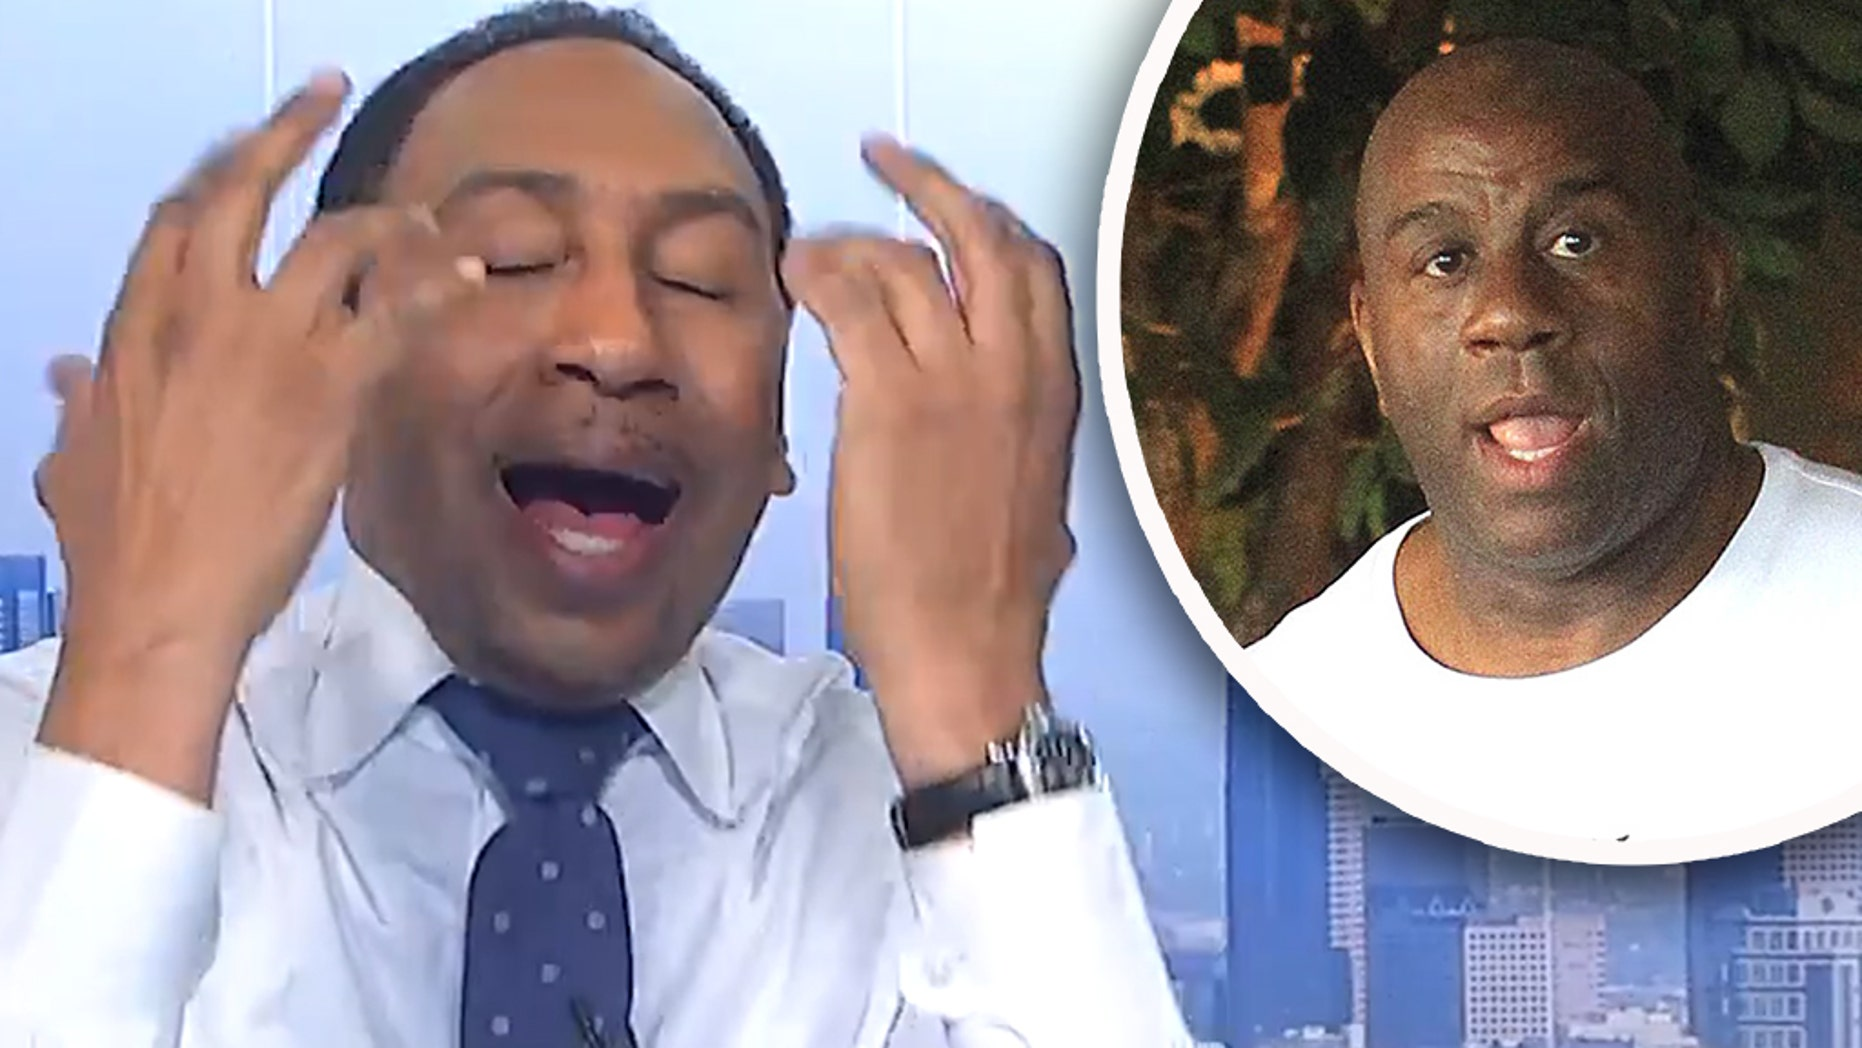 Stephen A. Smith, ESPN's big star, unloaded against the reporting of his own network over coverage of Magic Johnson's tenure as president of the Los Angeles Lakers.